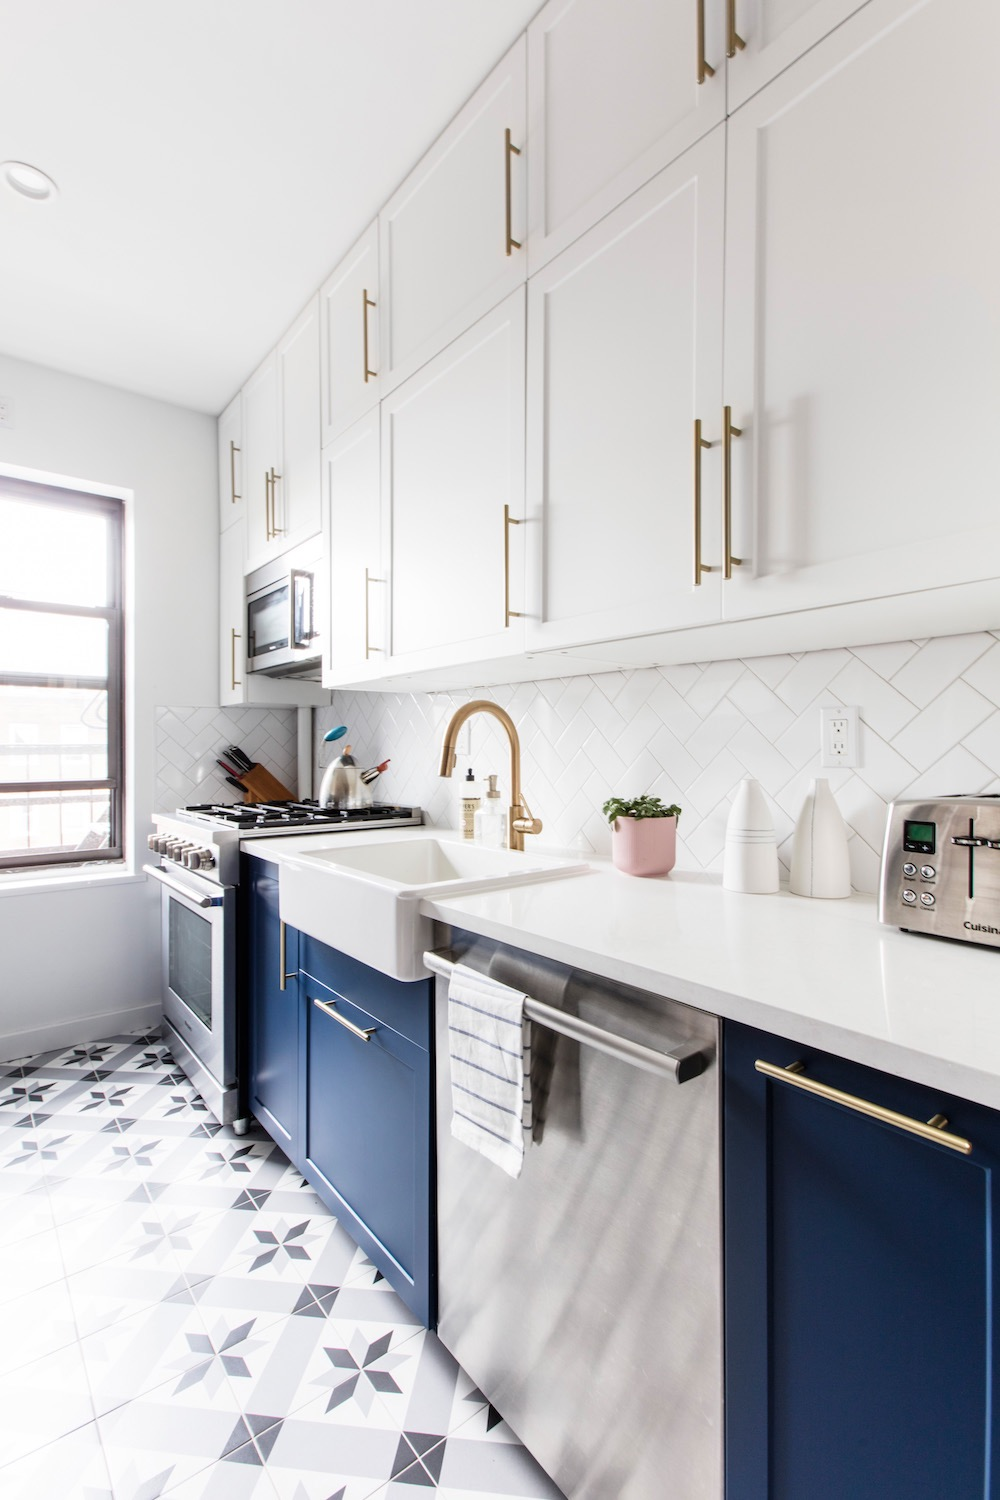 Kitchen renovation, blue and white cabinetry and gold handles